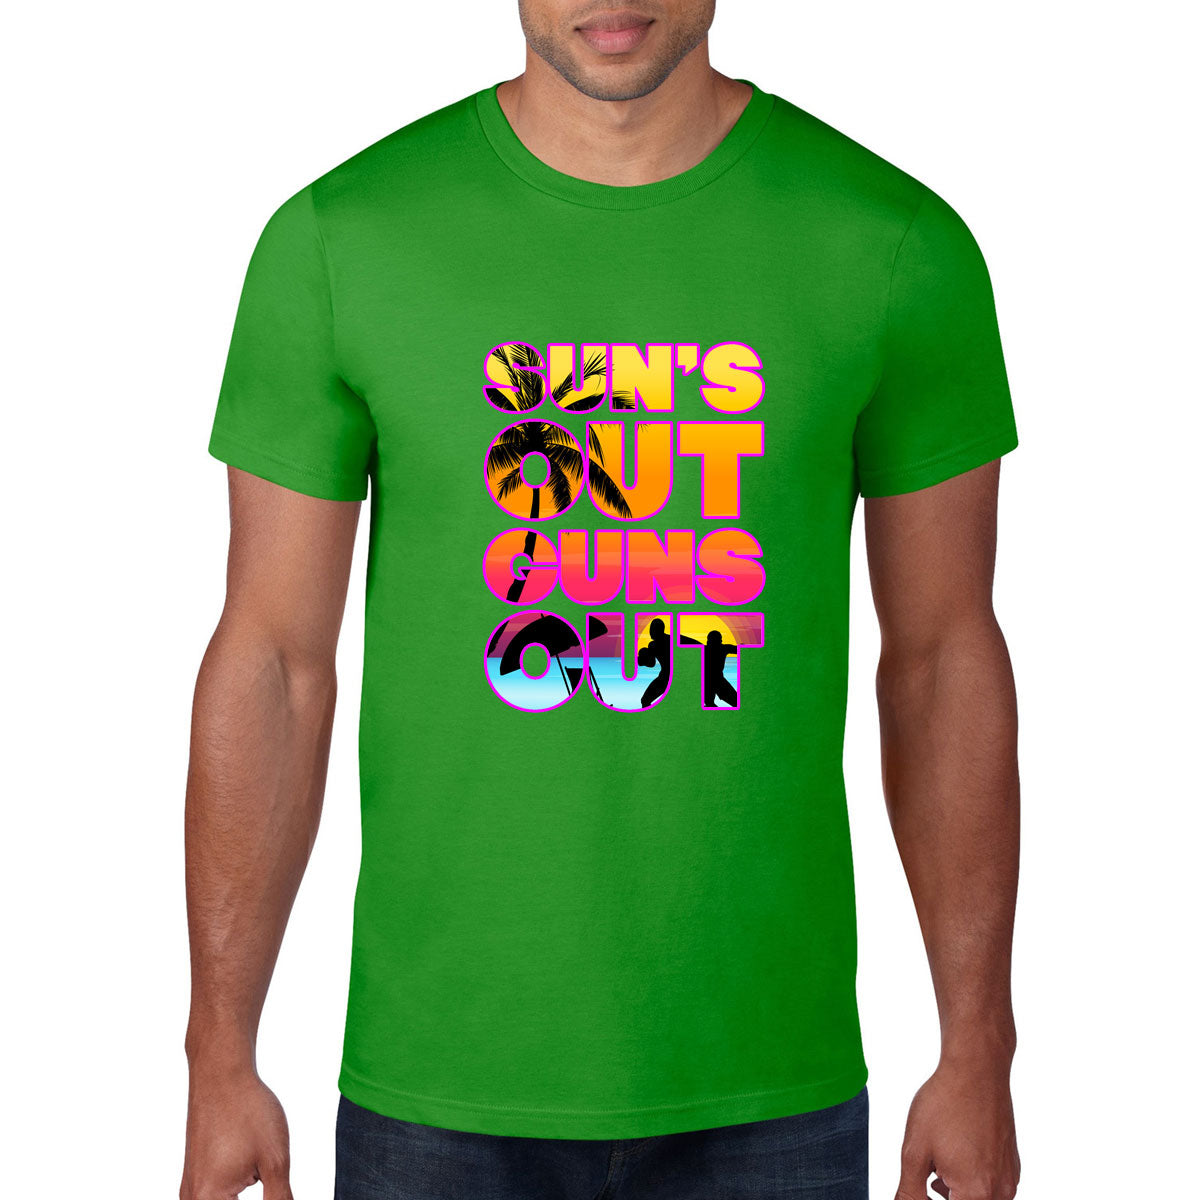 Sun's Out, Guns Out Rugby Tee - First XV rugbystuff.com